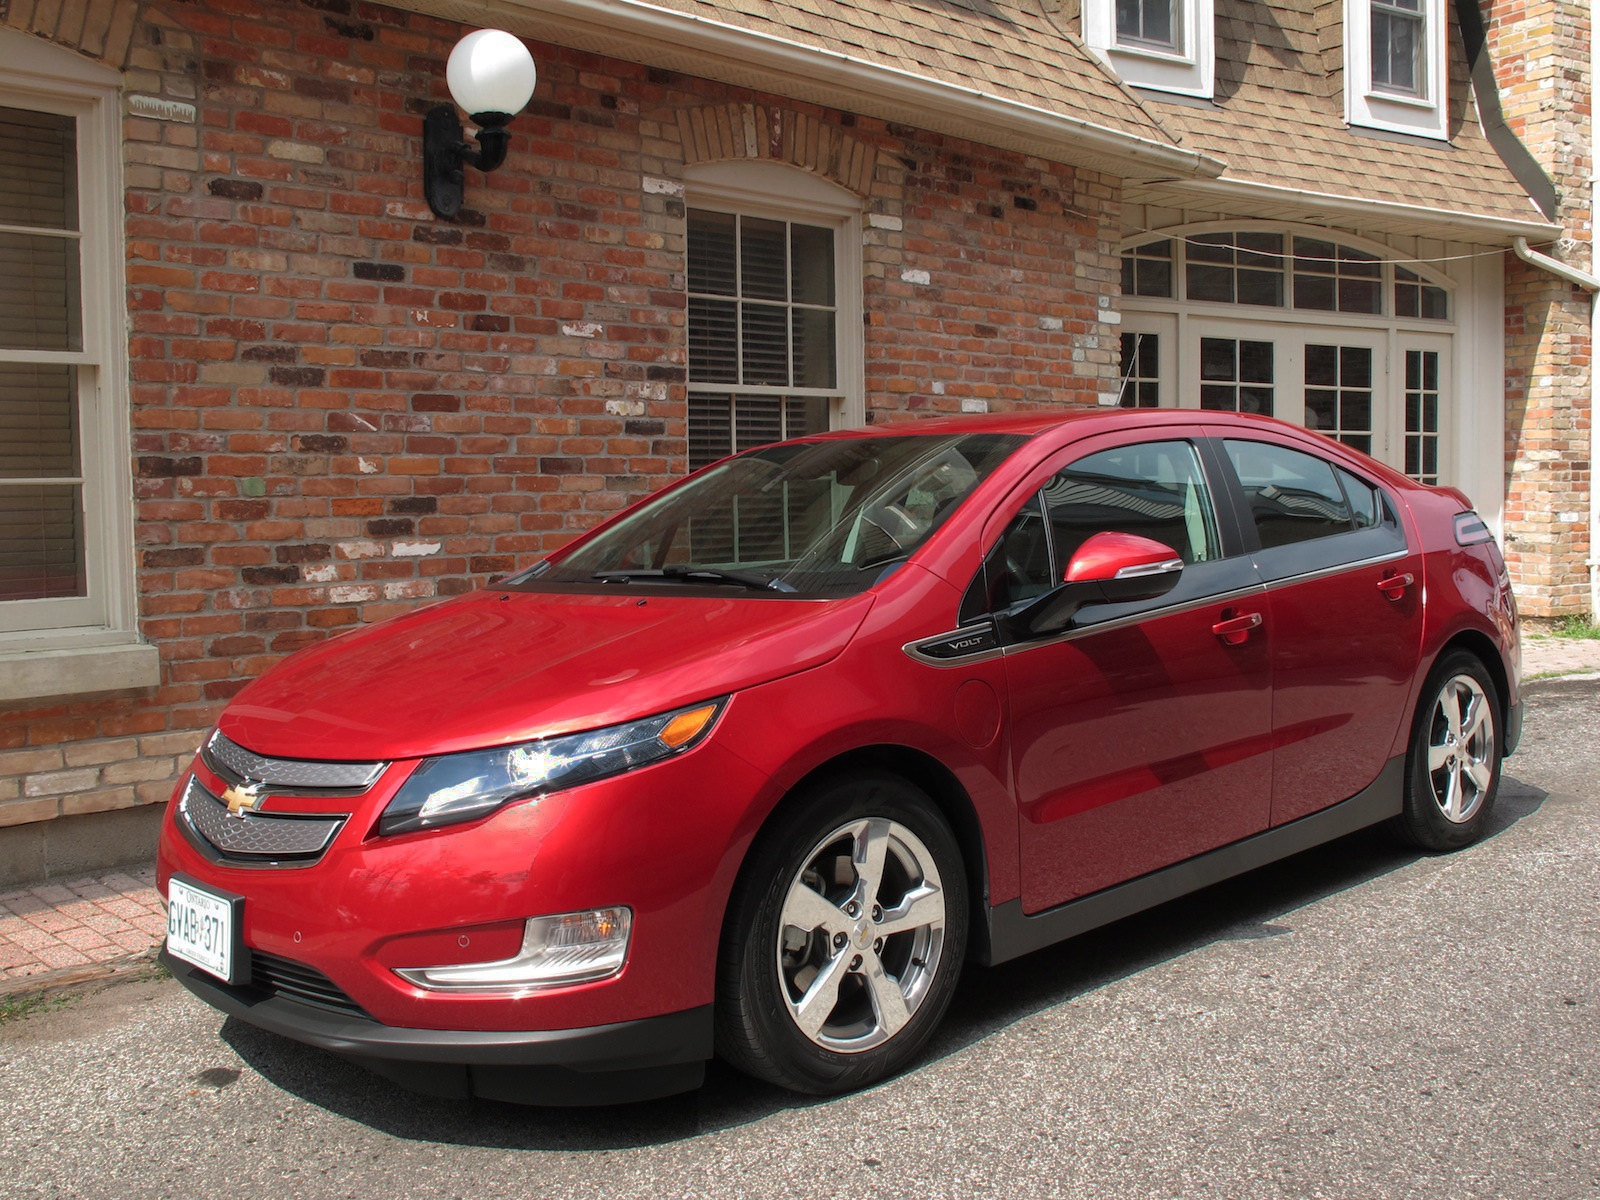 2014 chevrolet volt review cars photos test drives and reviews canadian auto review. Black Bedroom Furniture Sets. Home Design Ideas